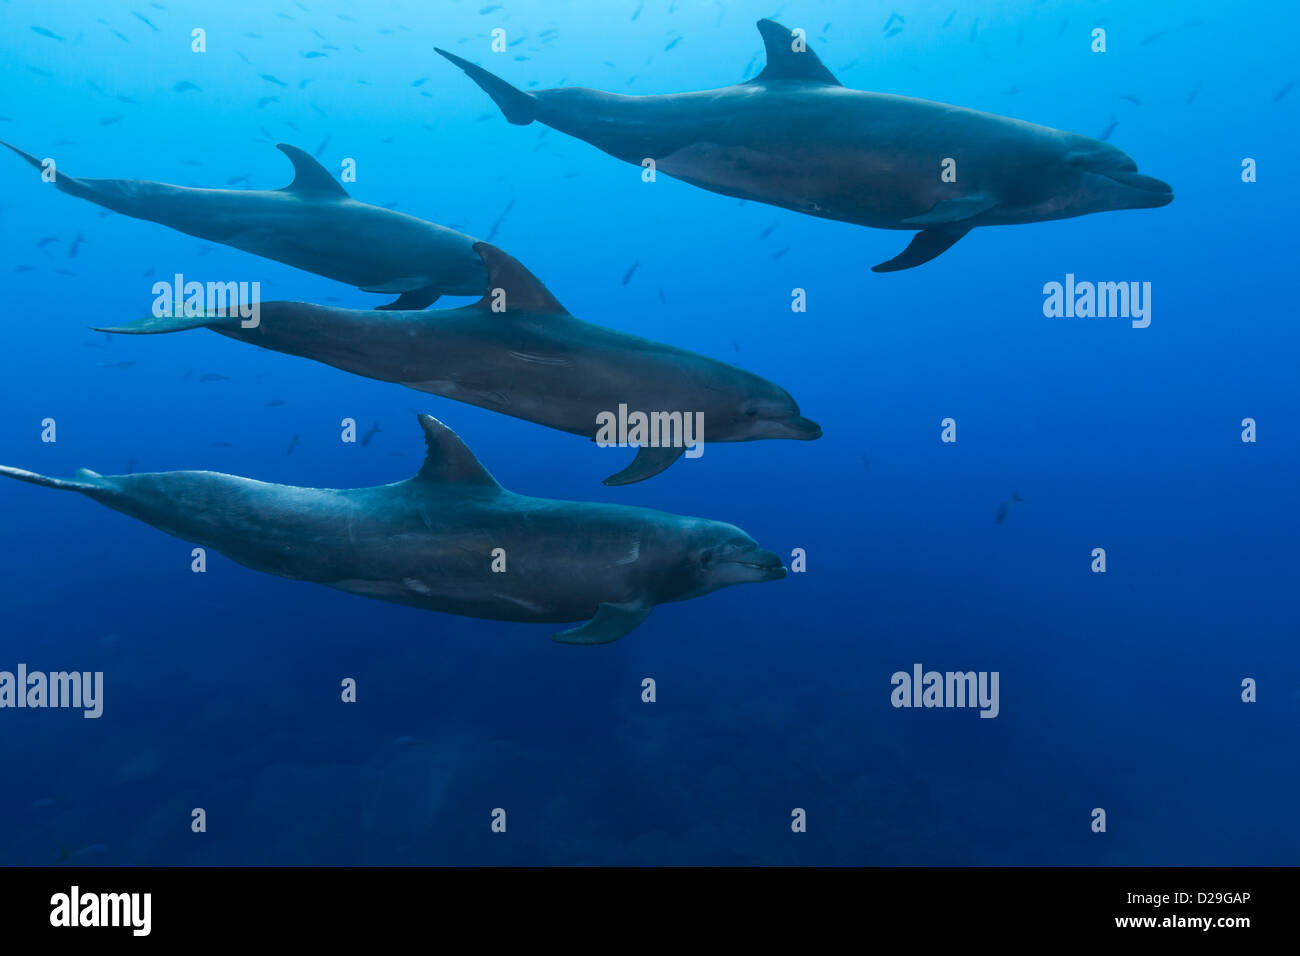 A pod of bottlenose dolphins (tursiops truncatus) swimming in waters of Archipielago de Revillagigedo, Las Cuevitas Stock Photo